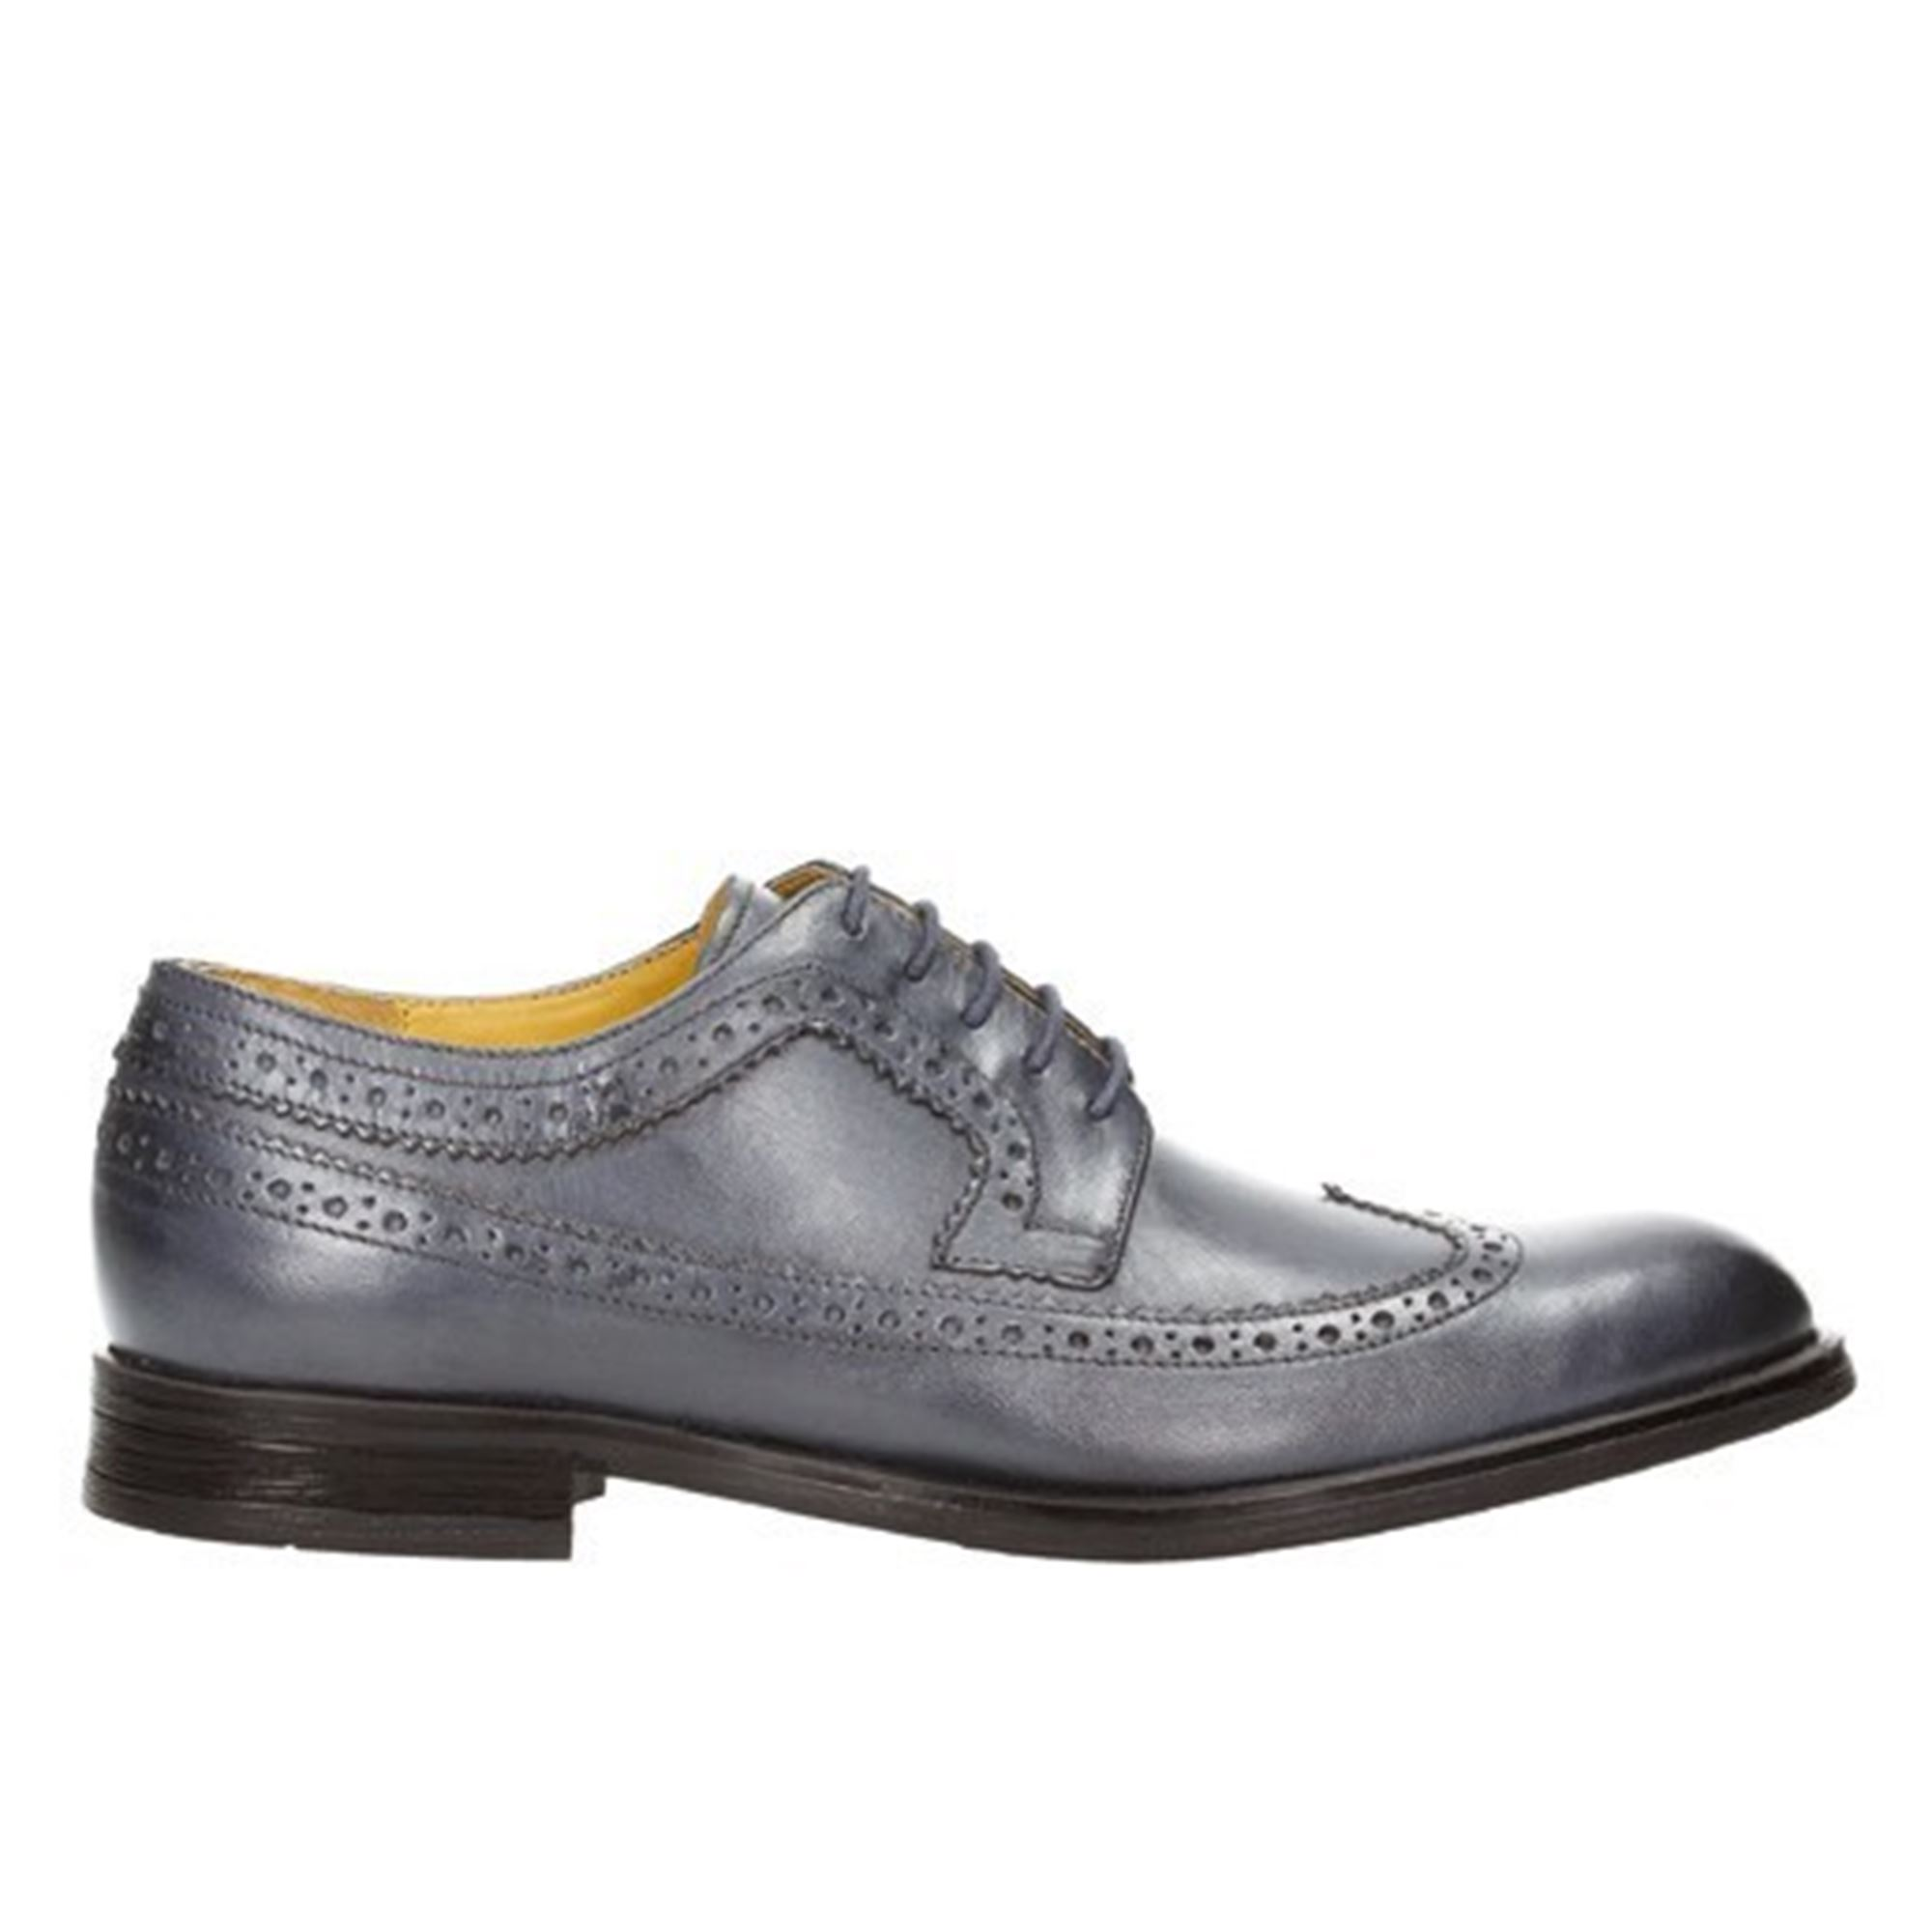 Tata Italia Shoes Man Derby Navy 8-005-25/E19